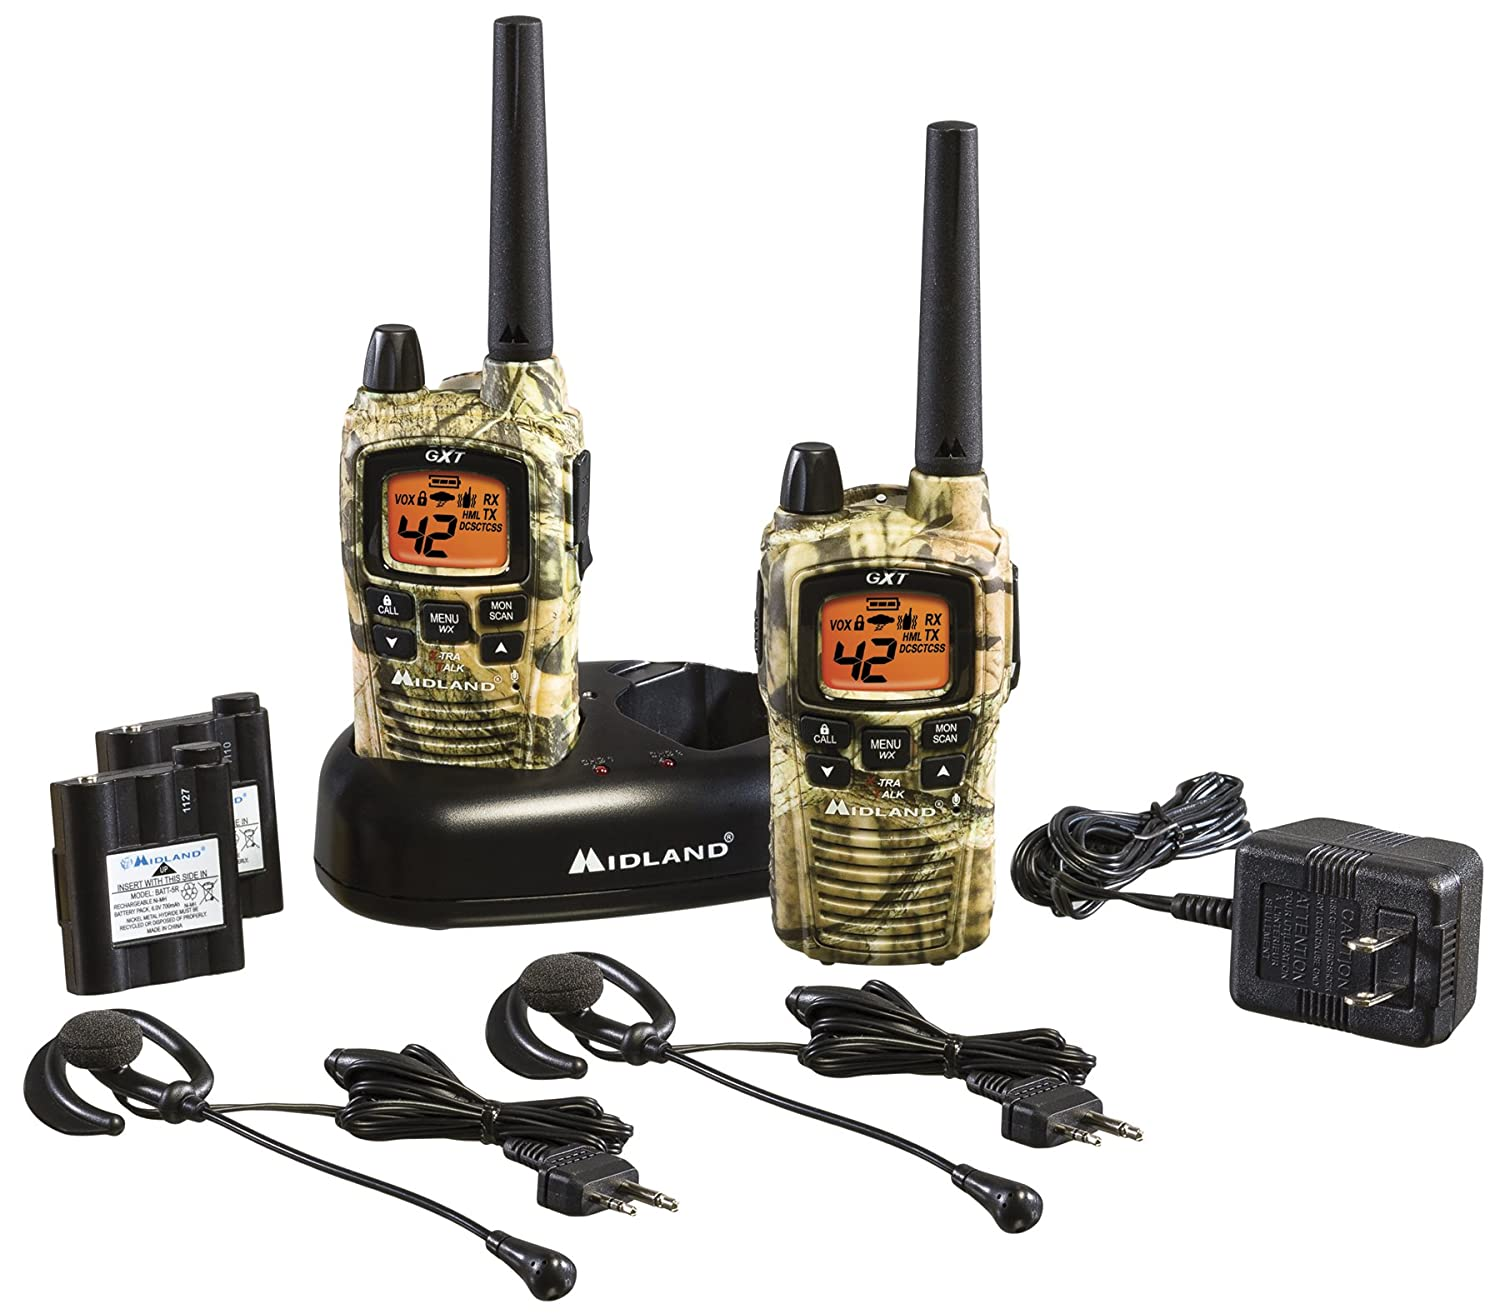 Midland Walkie Talkie Review |Midland Walkie Talkie